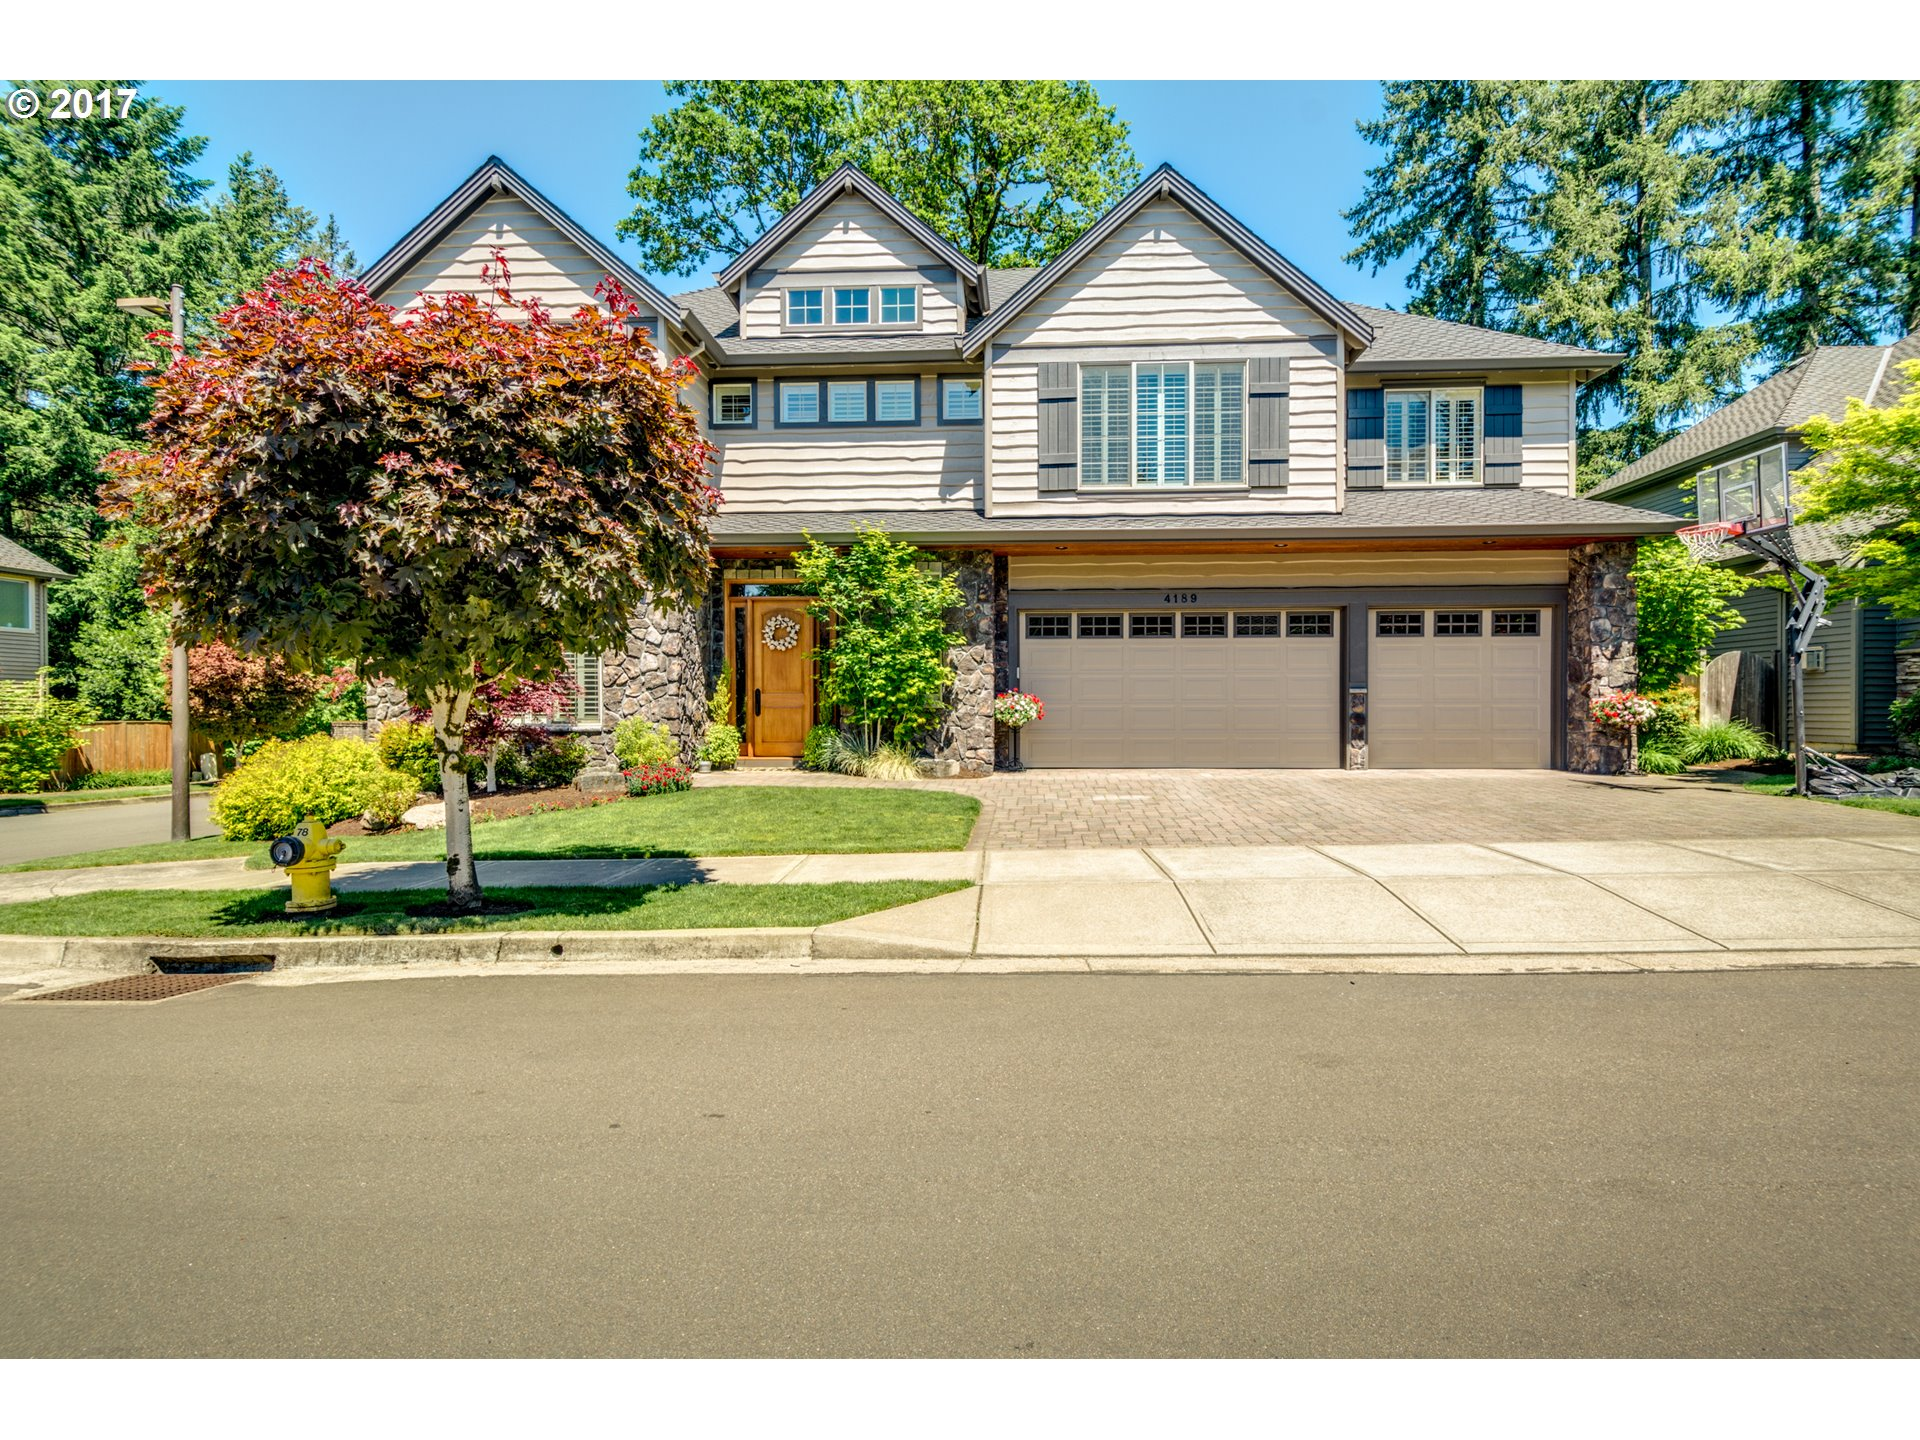 4189 Chad DR, Lake Oswego, OR 97034